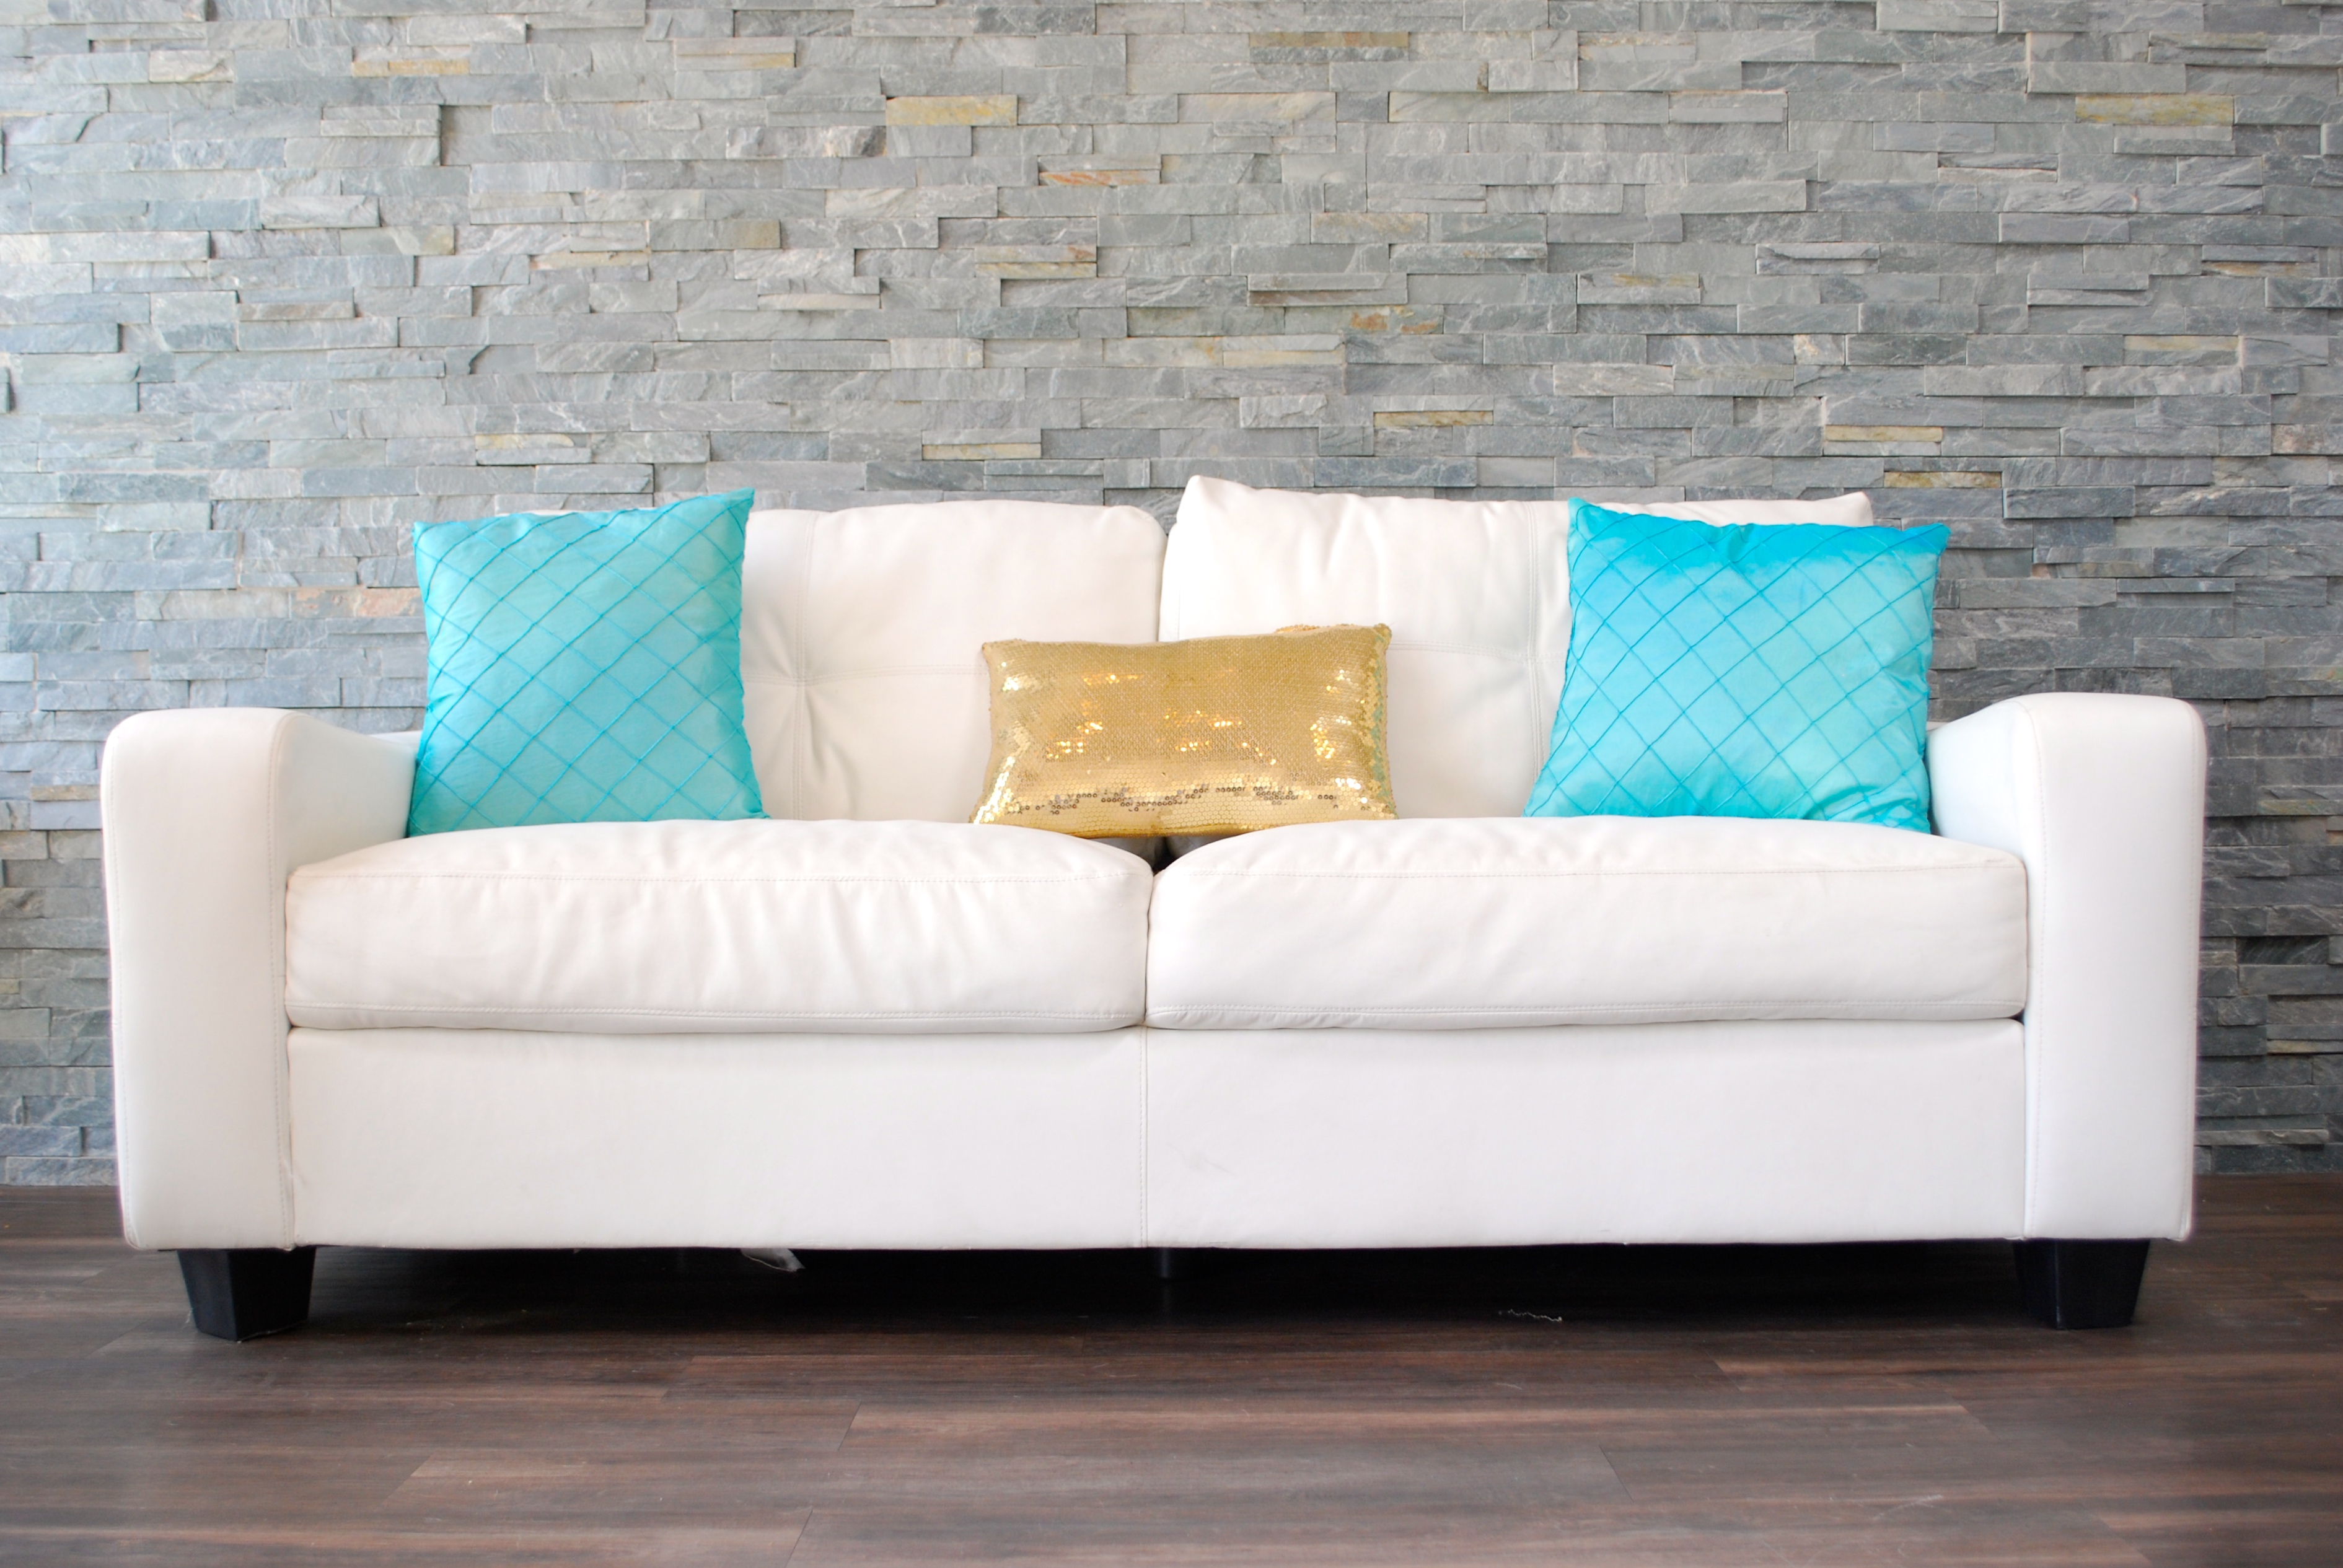 Fullsize Of White Leather Couch